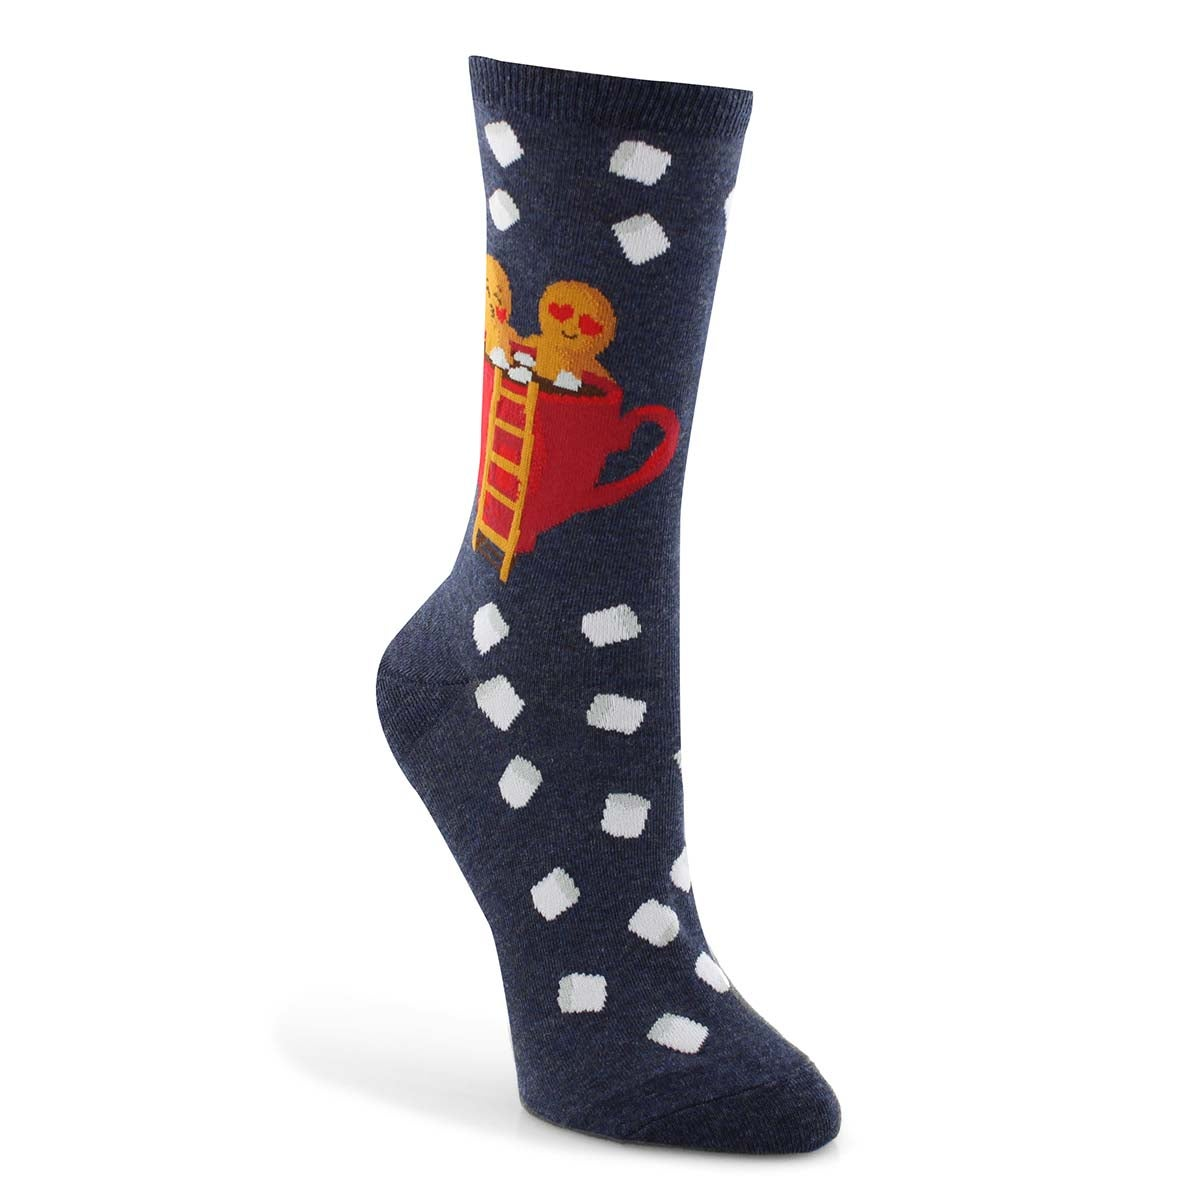 Lds Gingerbread Couple dnm printed sock